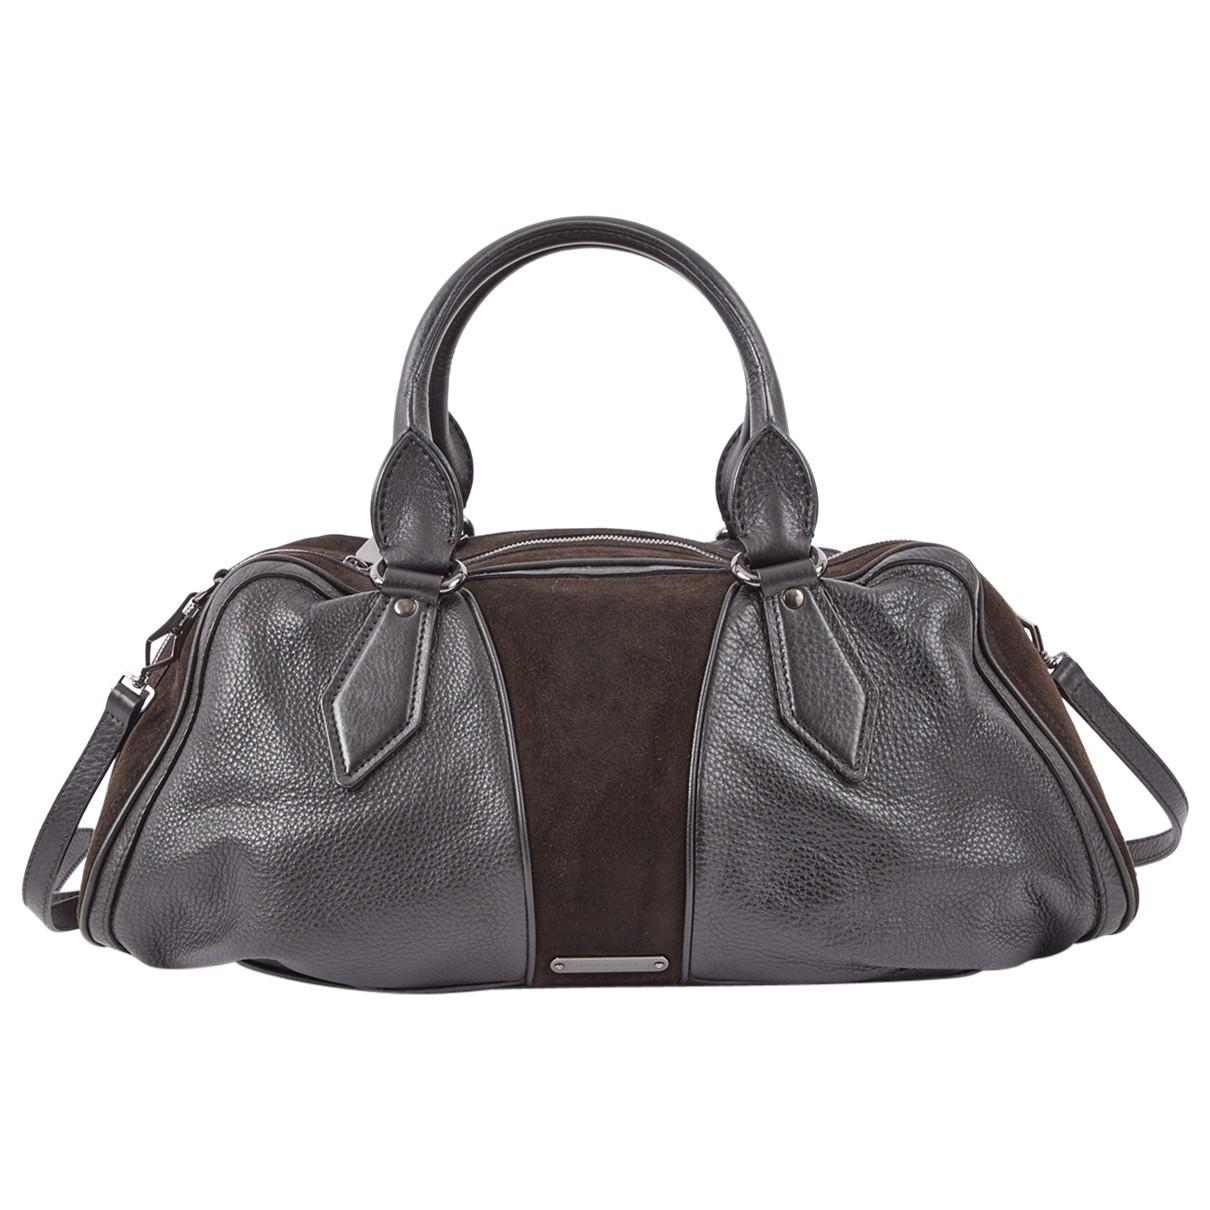 012927ab9f8a Burberry Leather Bowling Bag in Black - Lyst